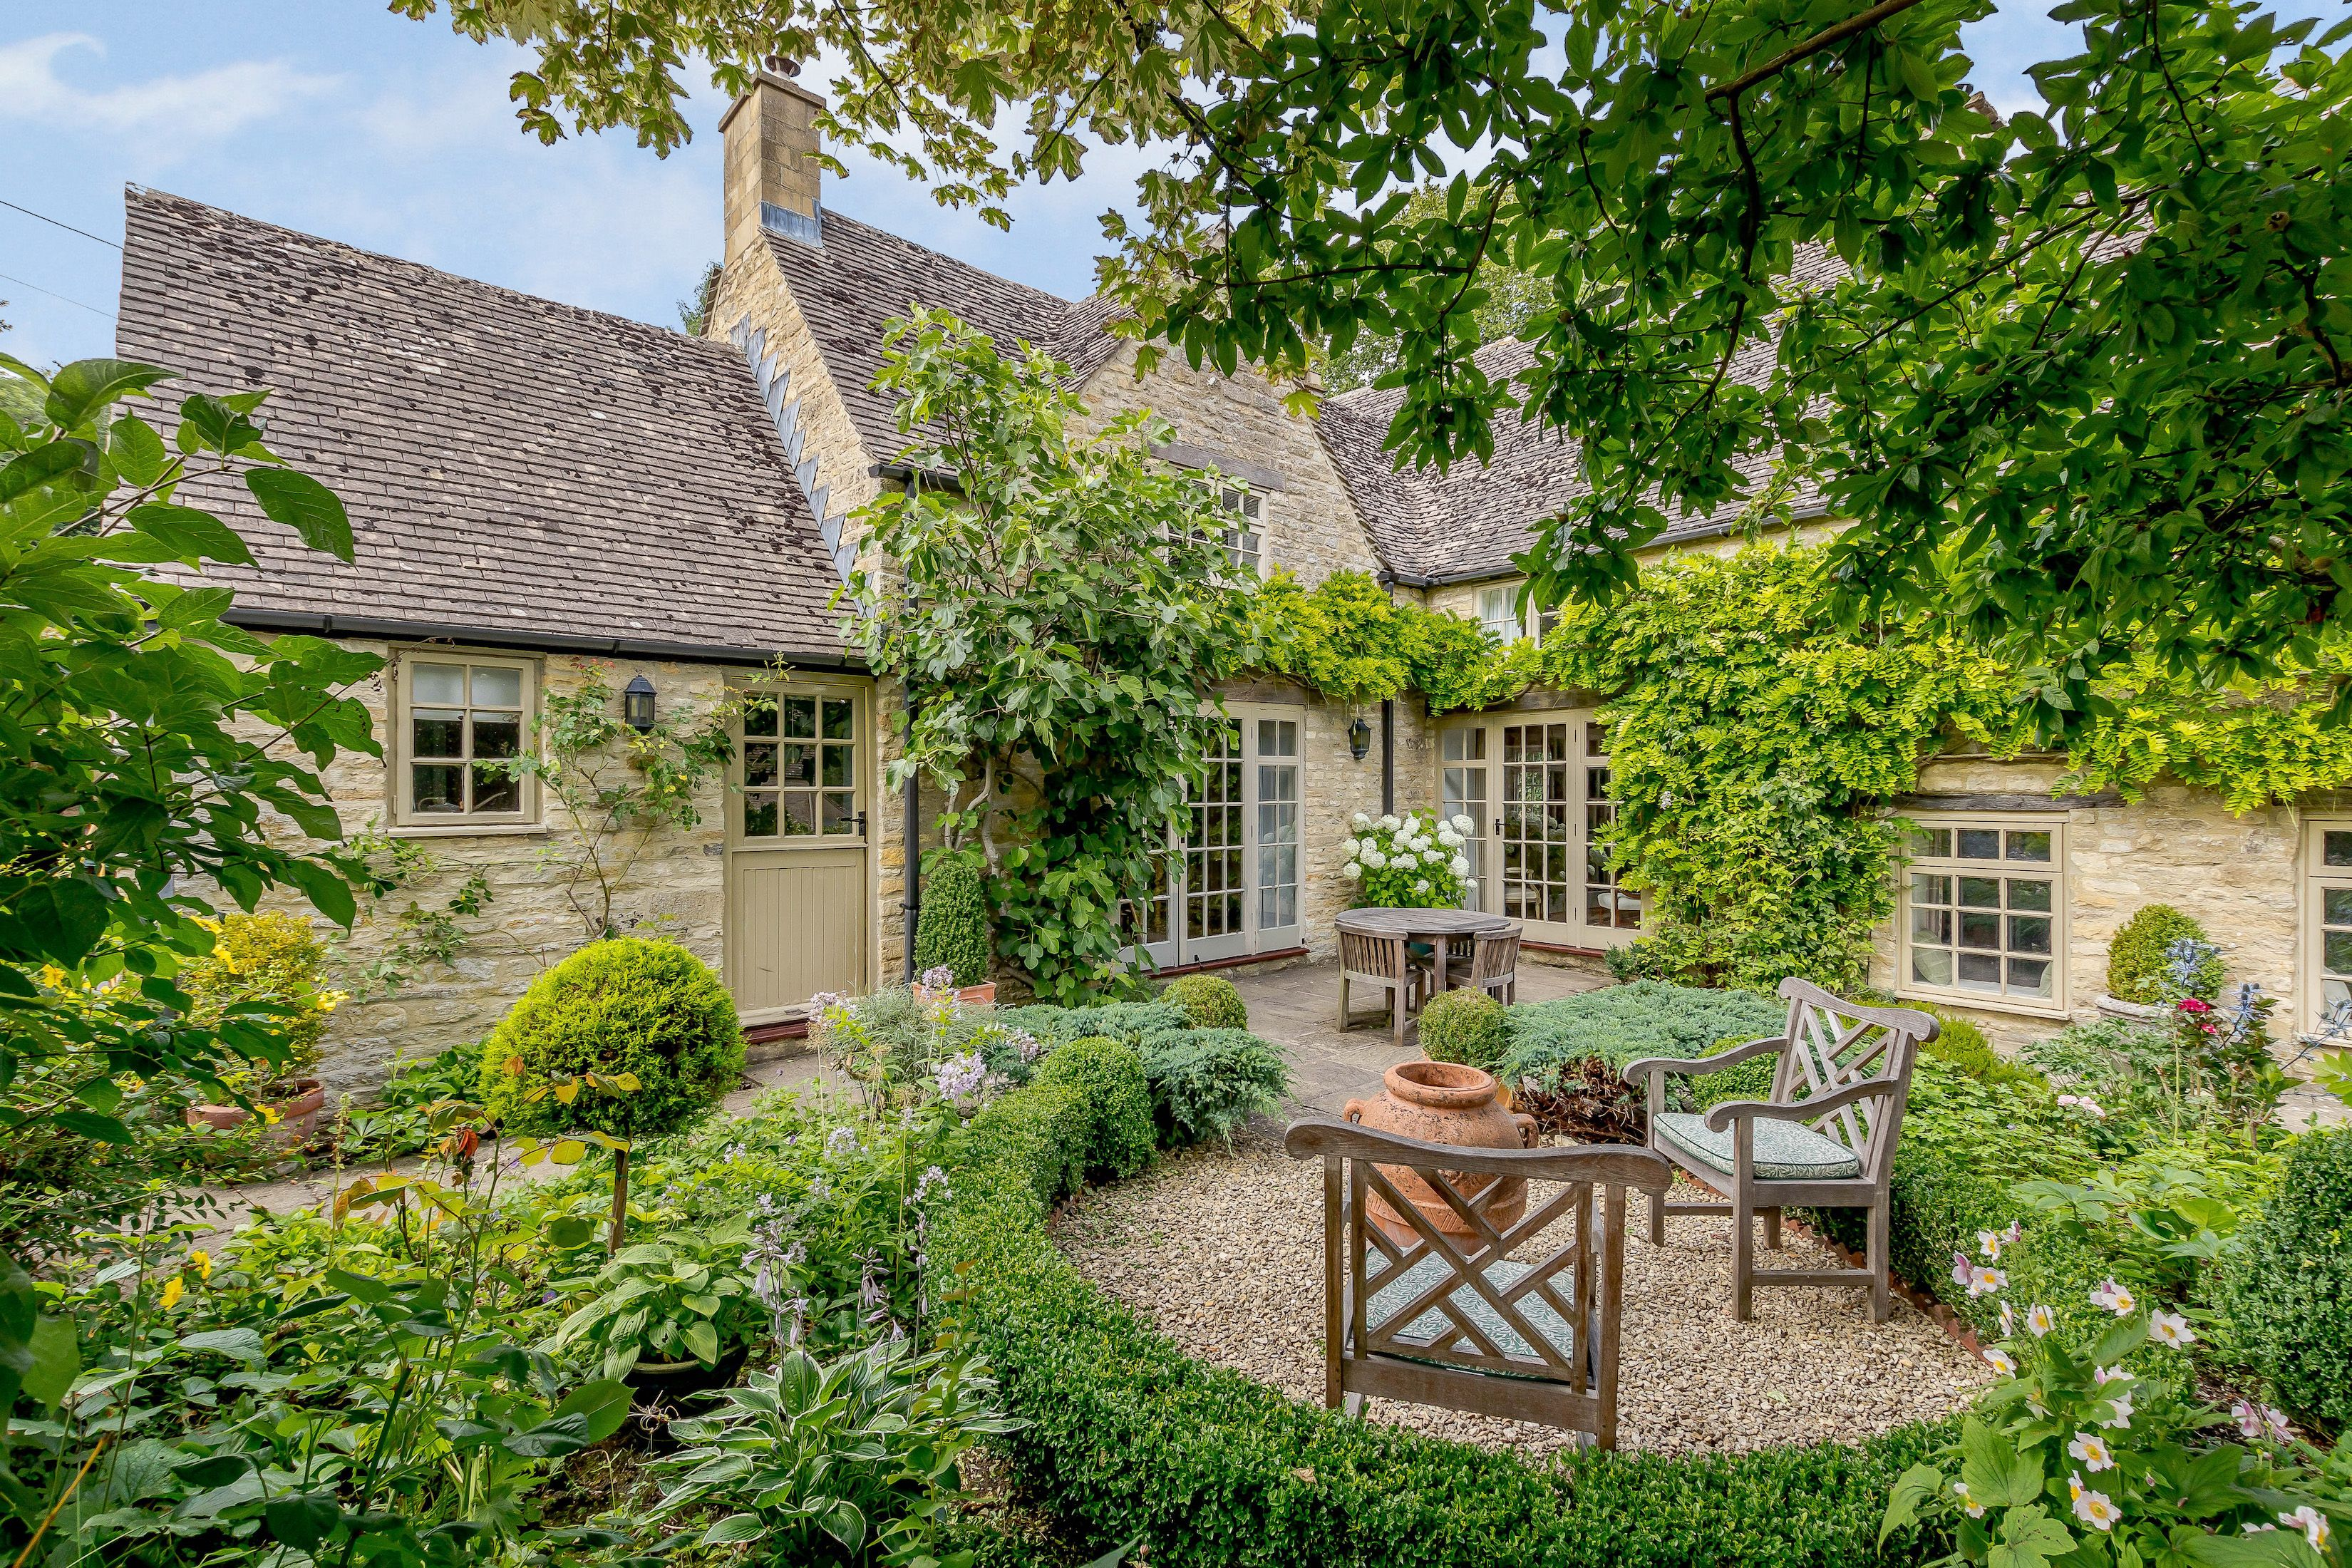 8 Dreamy Cotswold Cottages For Sale Properties In The Cotswolds